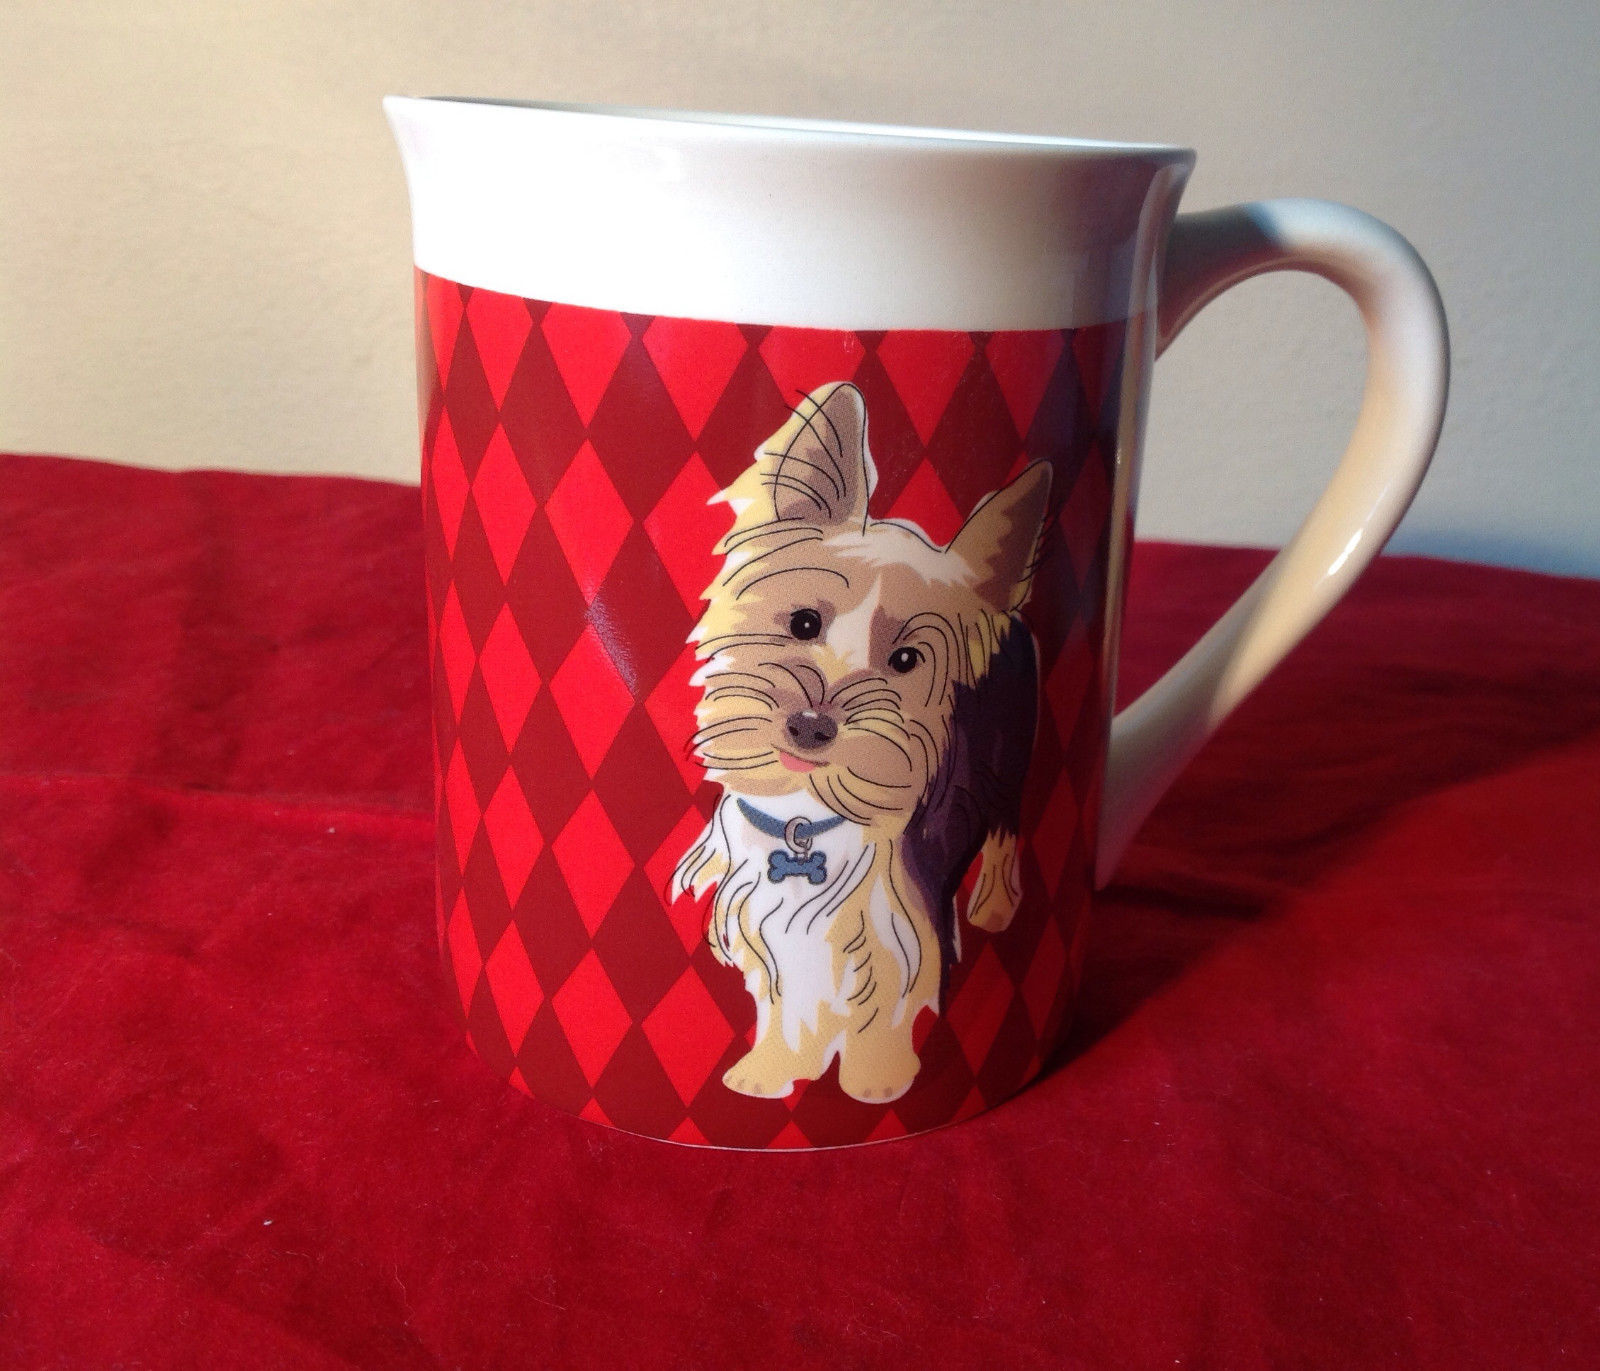 Go Dog Yorkie Mug by Paper Russells w Original Box 16 ounces Department 56